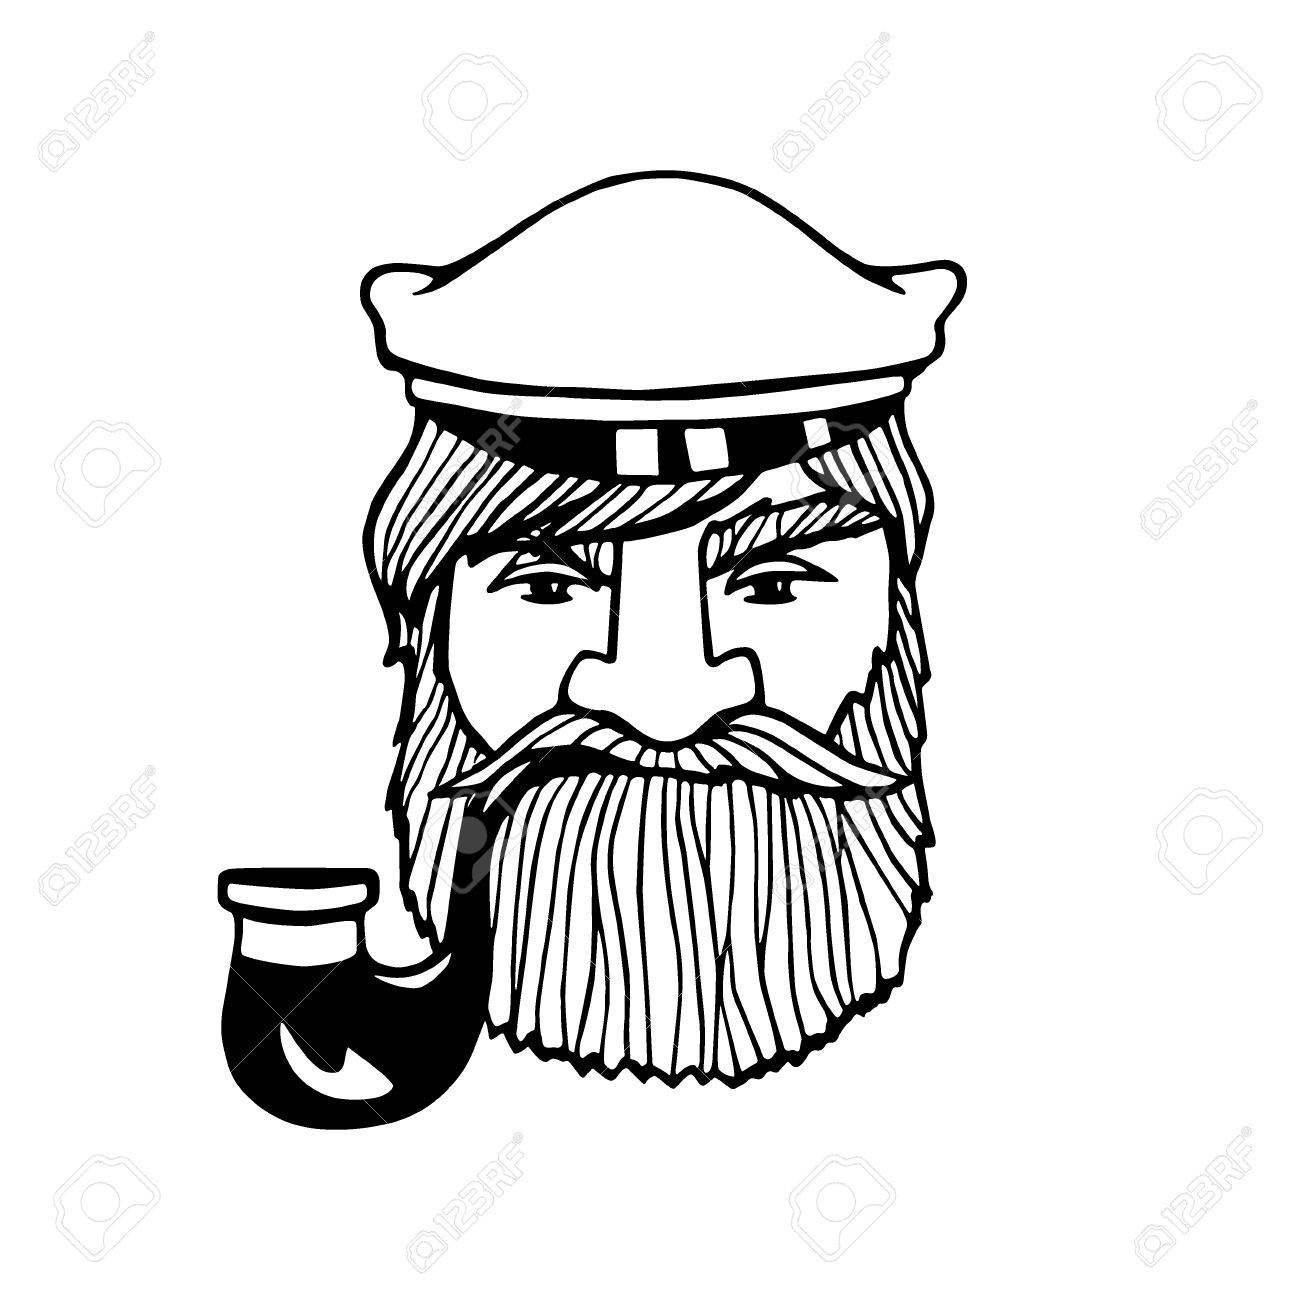 1300x1300 Hand Drawn Head Of Seaman With Smoking Pipe And Peaked Cap. Vector